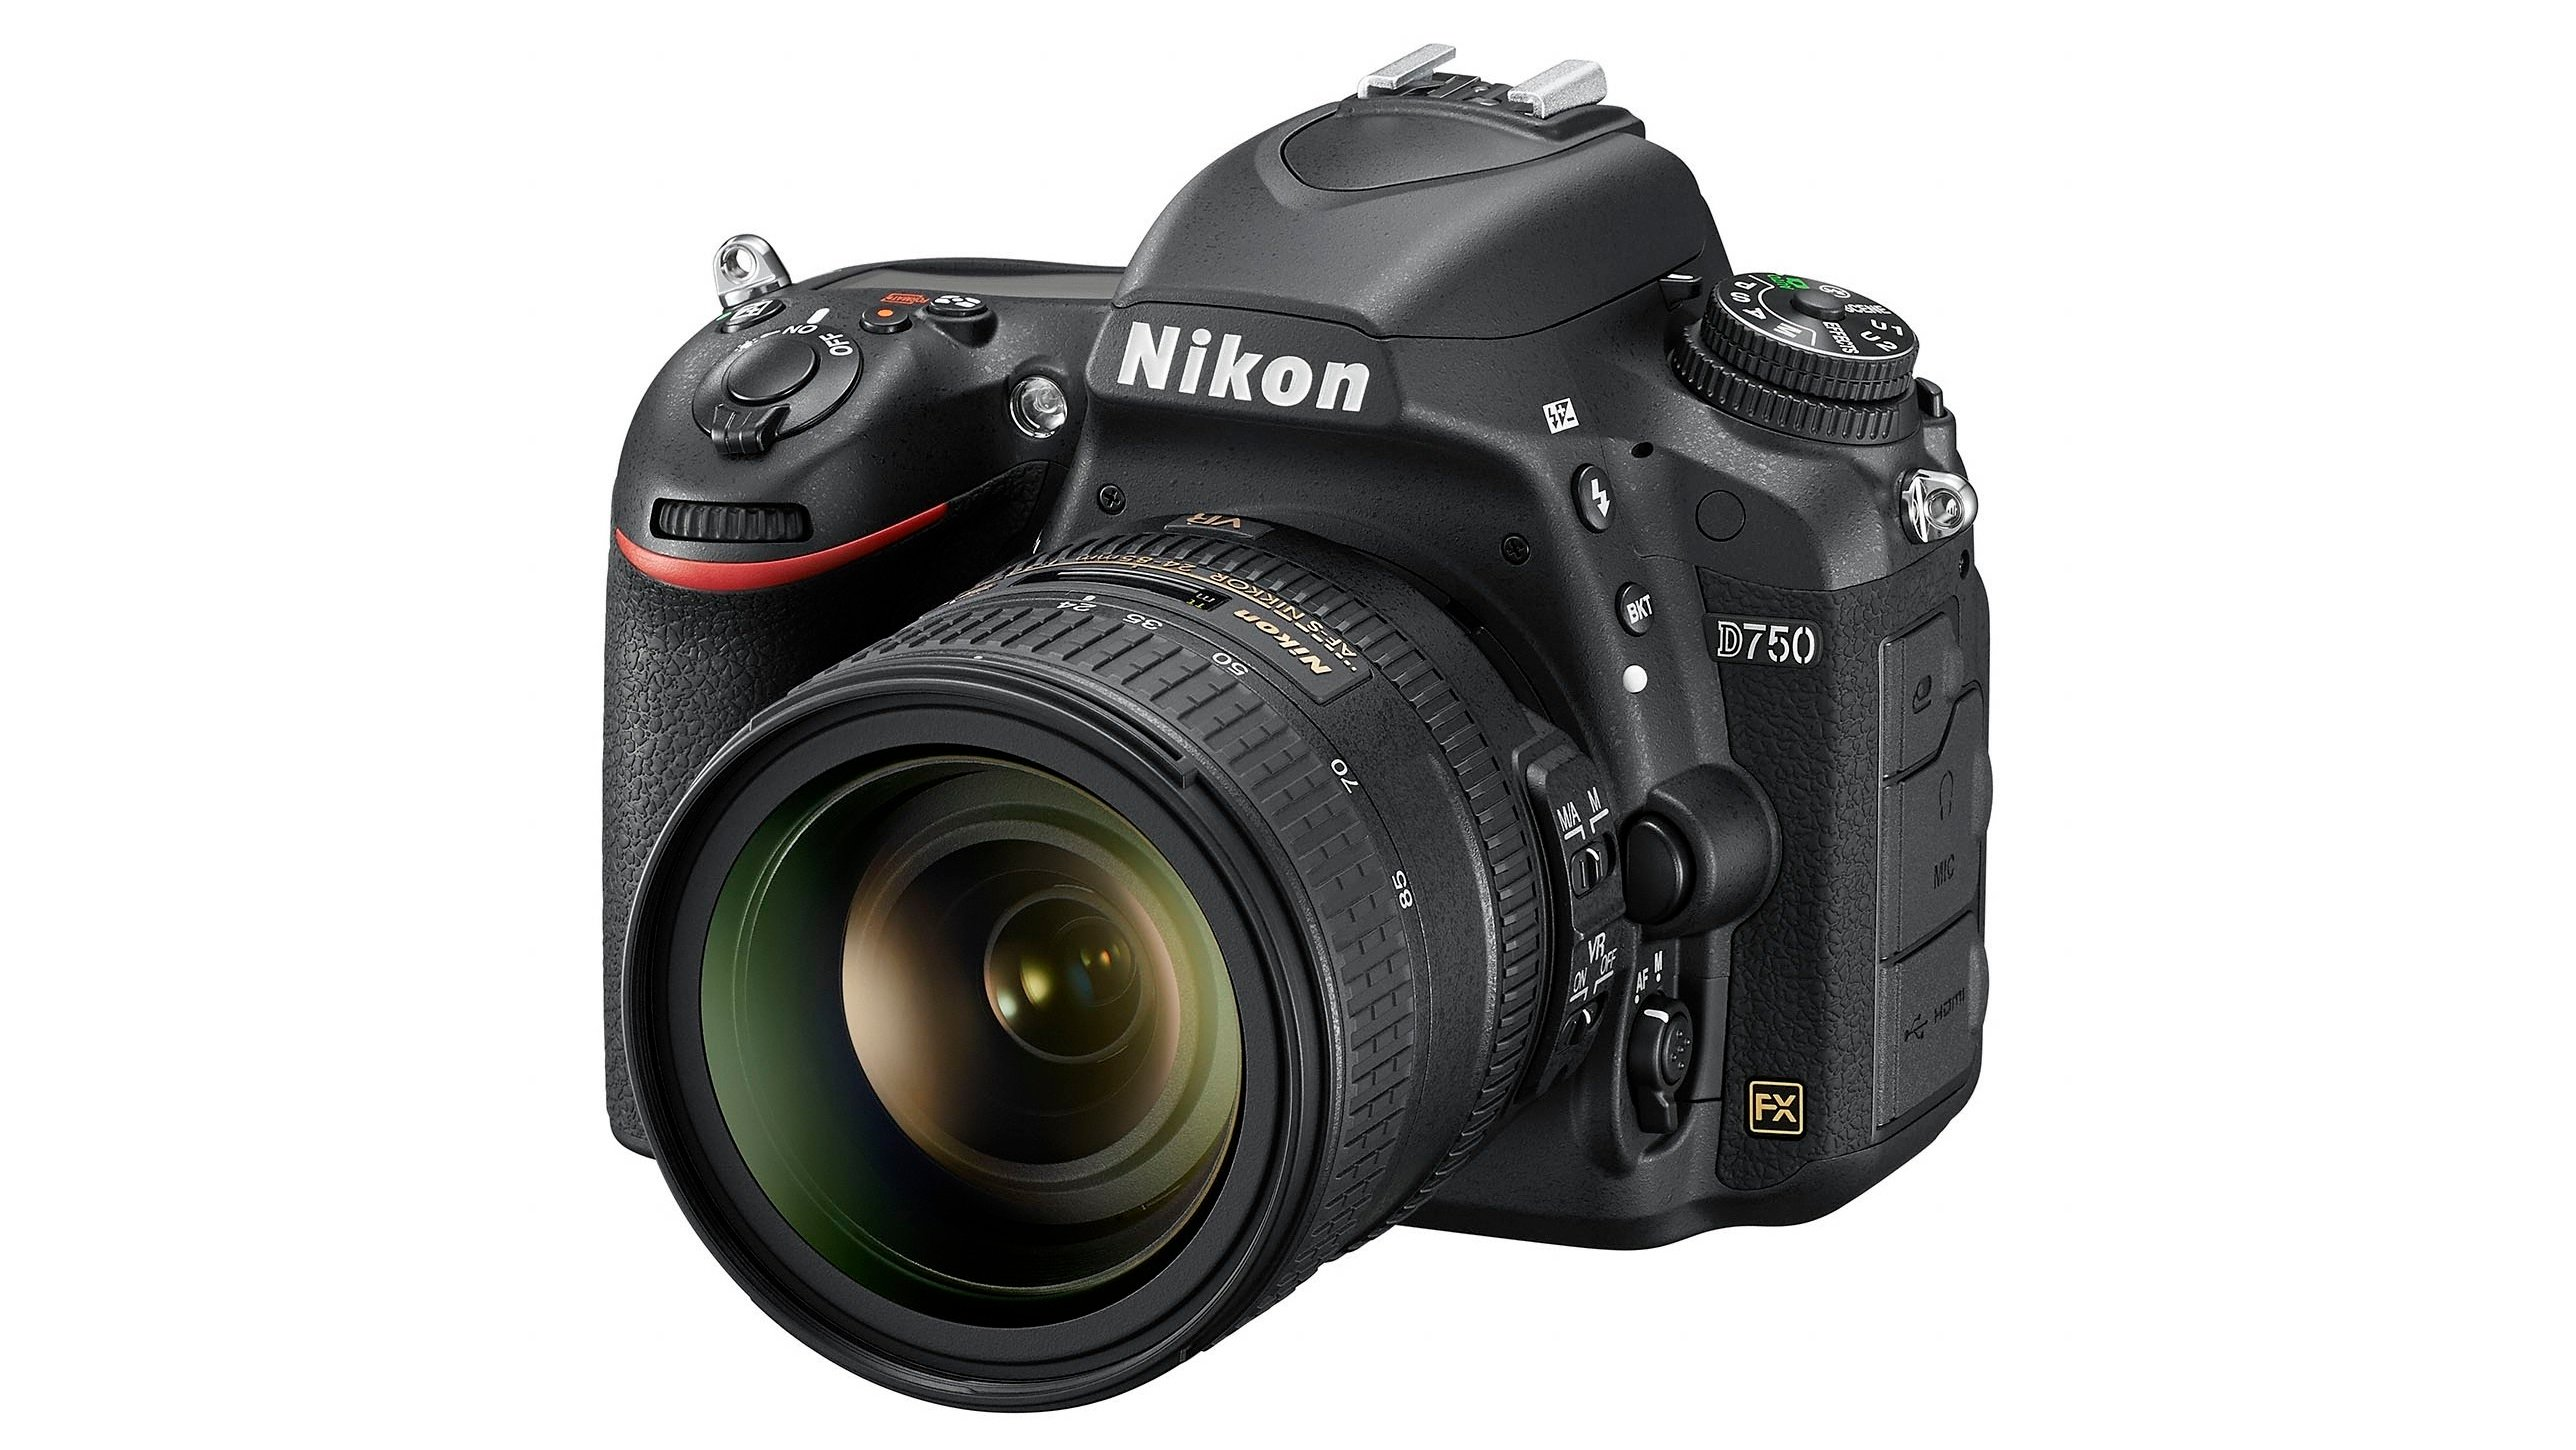 Nikon D750 Review An Outstandingly Good Full Frame Slr